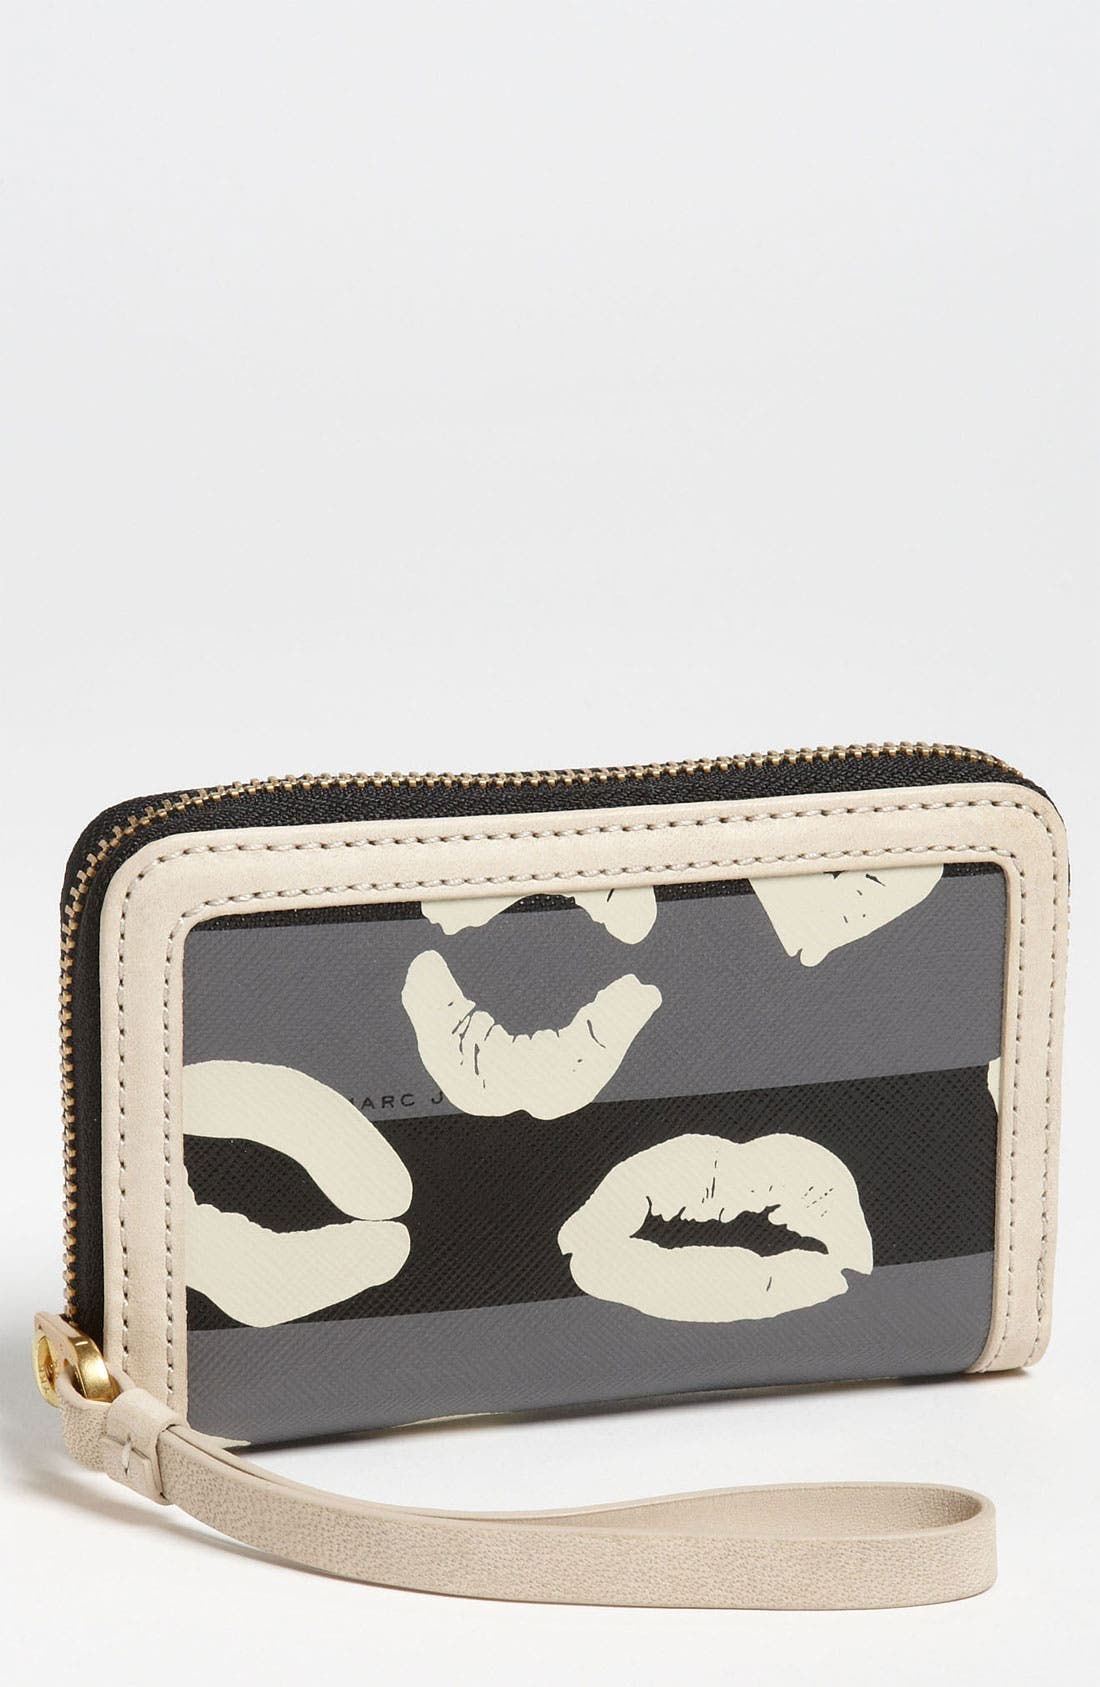 Main Image - MARC BY MARC JACOBS 'Eazy Pouch - Wingman B' Phone Wallet